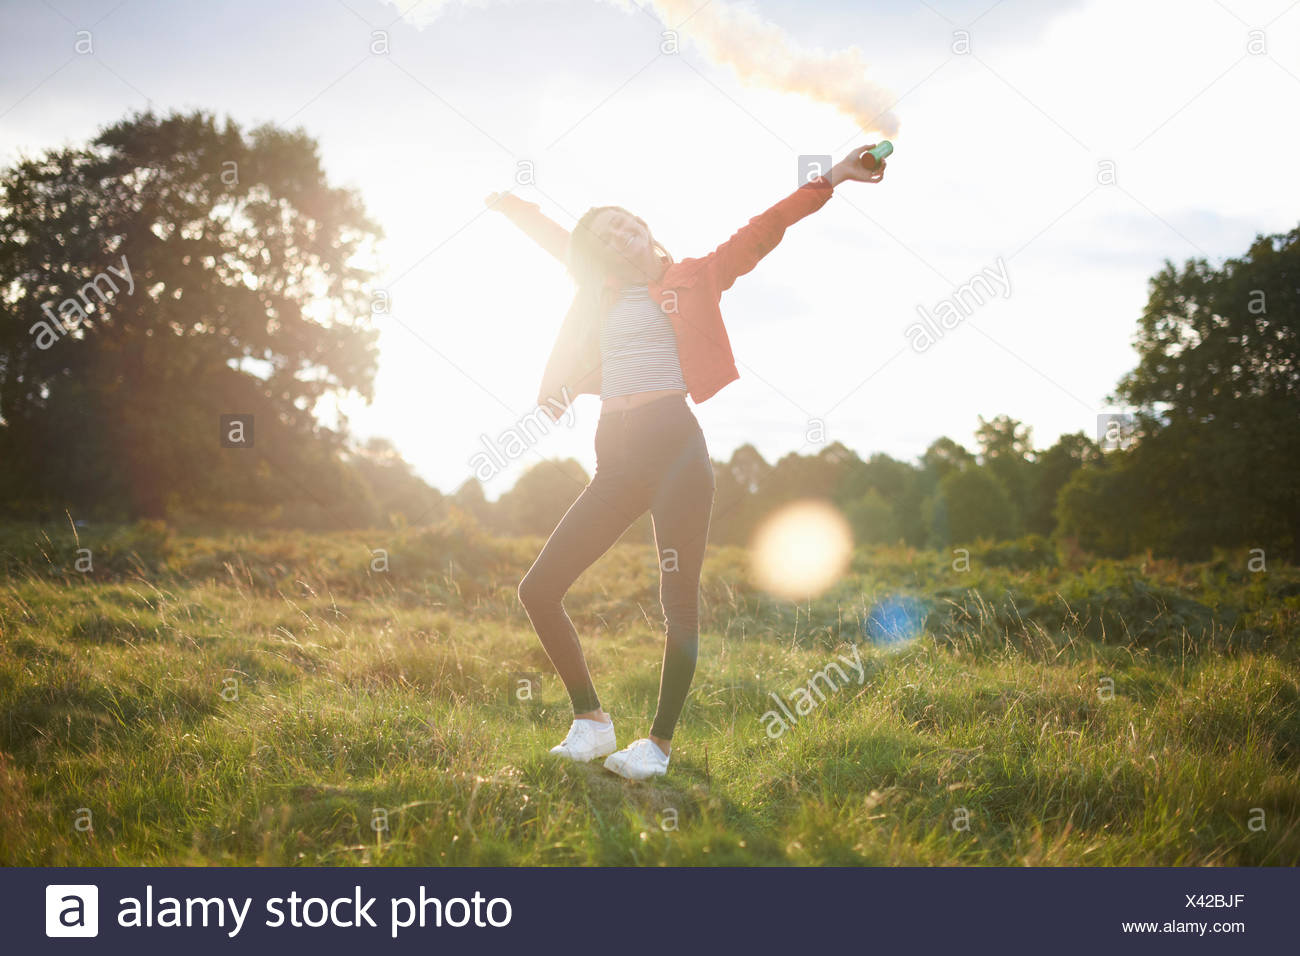 Young woman letting off smoke flare in sunlit field - Stock Image